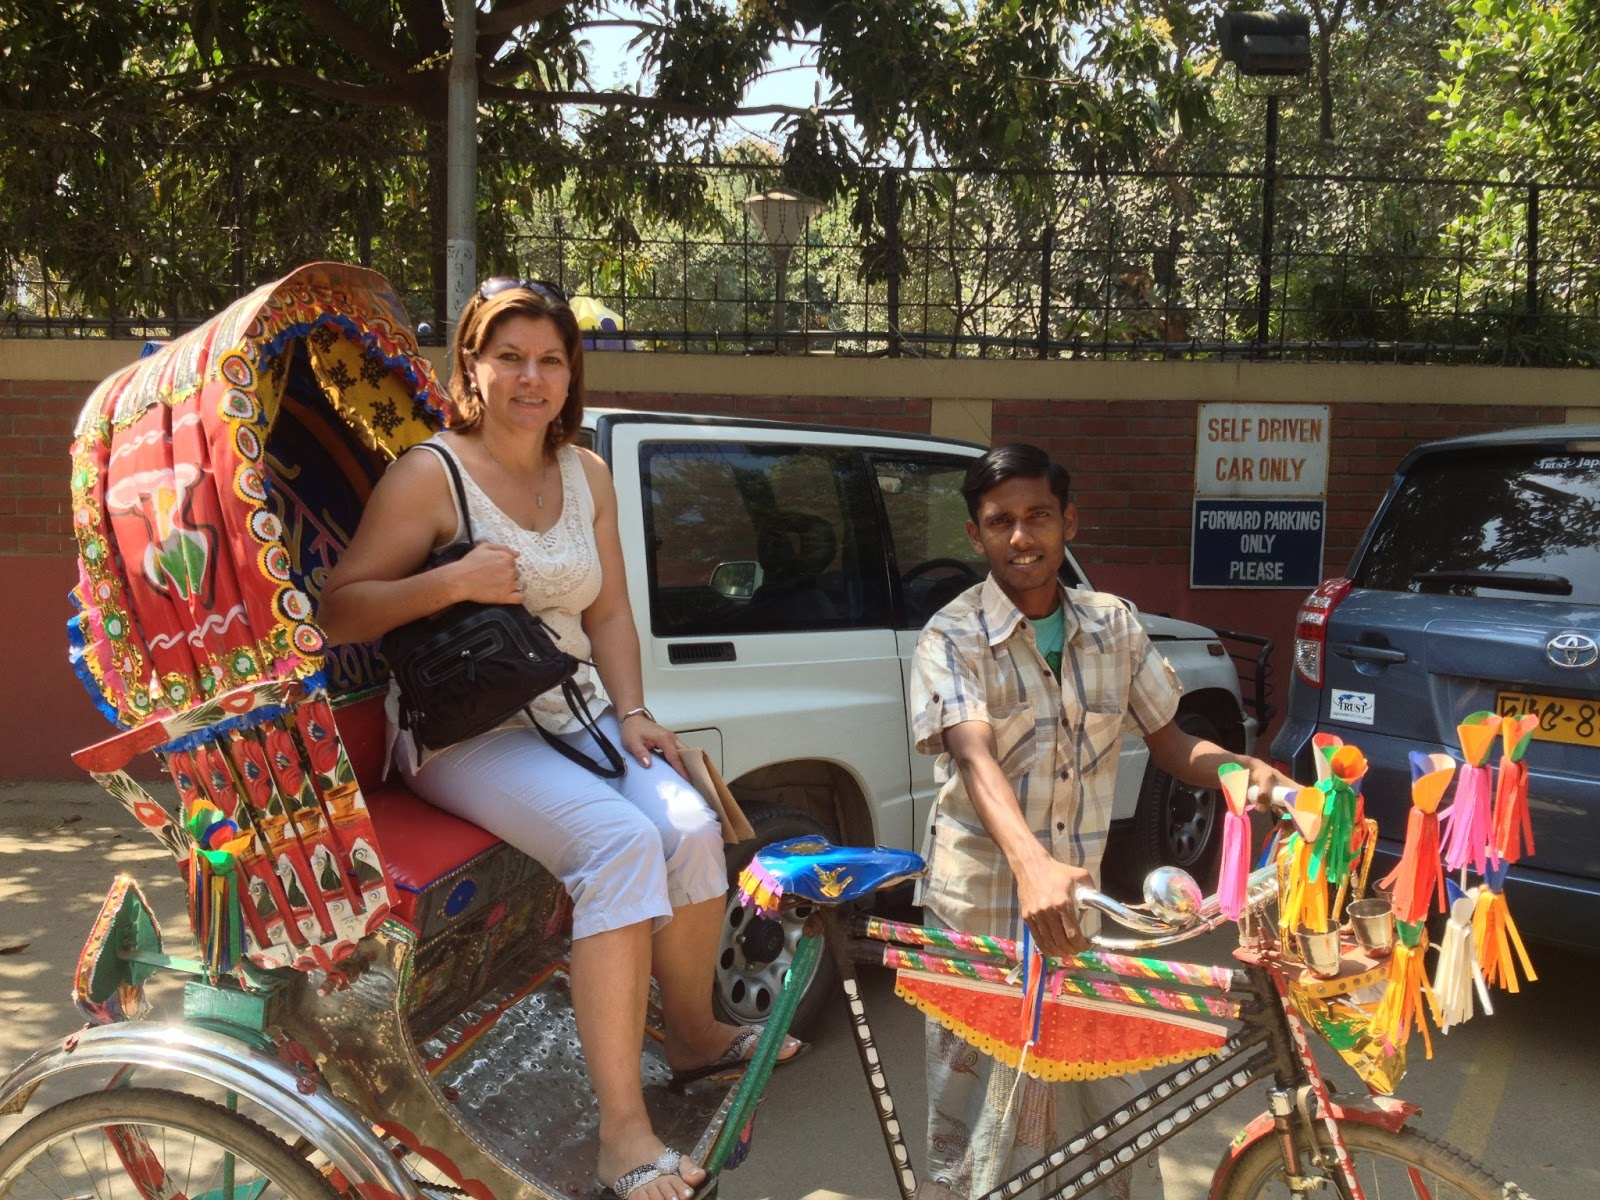 The Americans Will Come The Rickshaw Capital Of The World